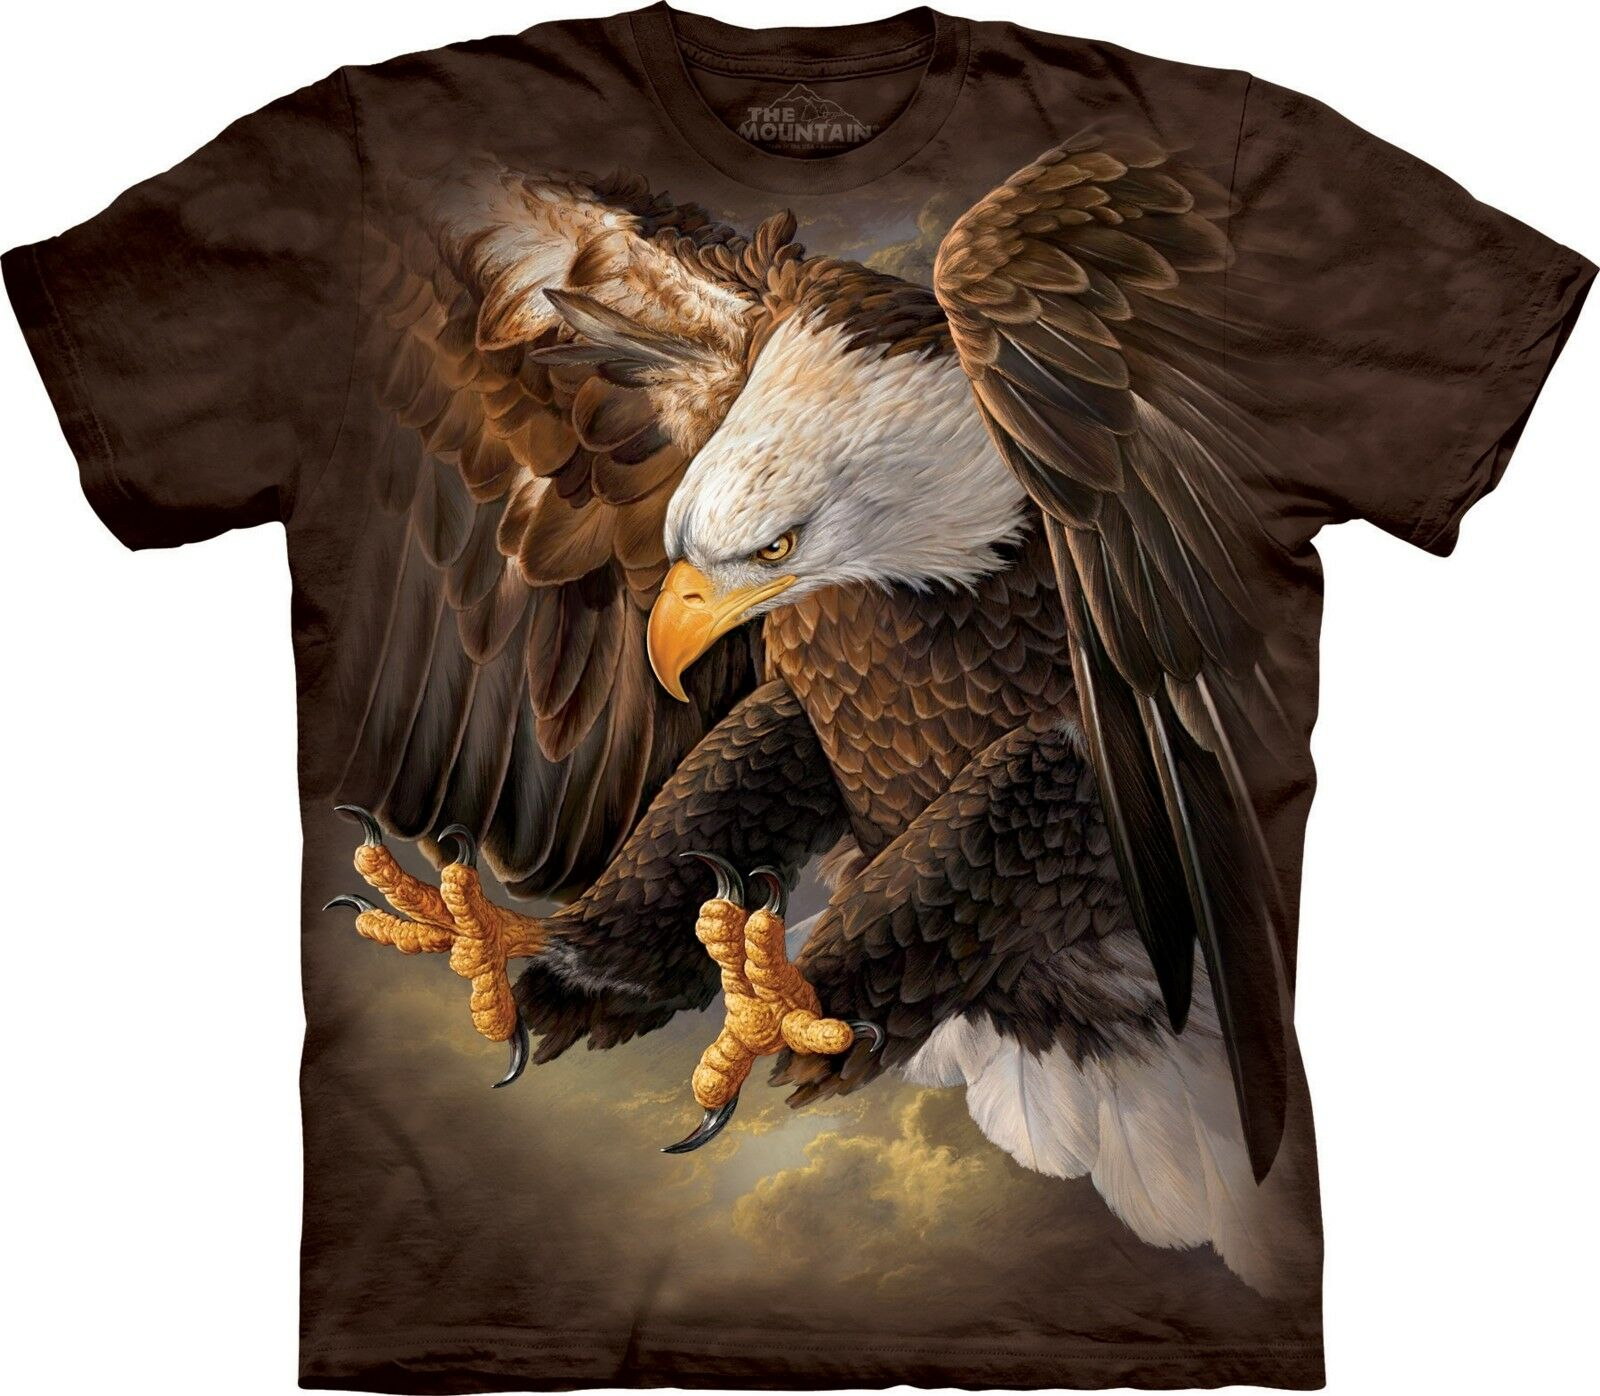 Freedom Eagle T Shirt Adult Unisex The Mountain